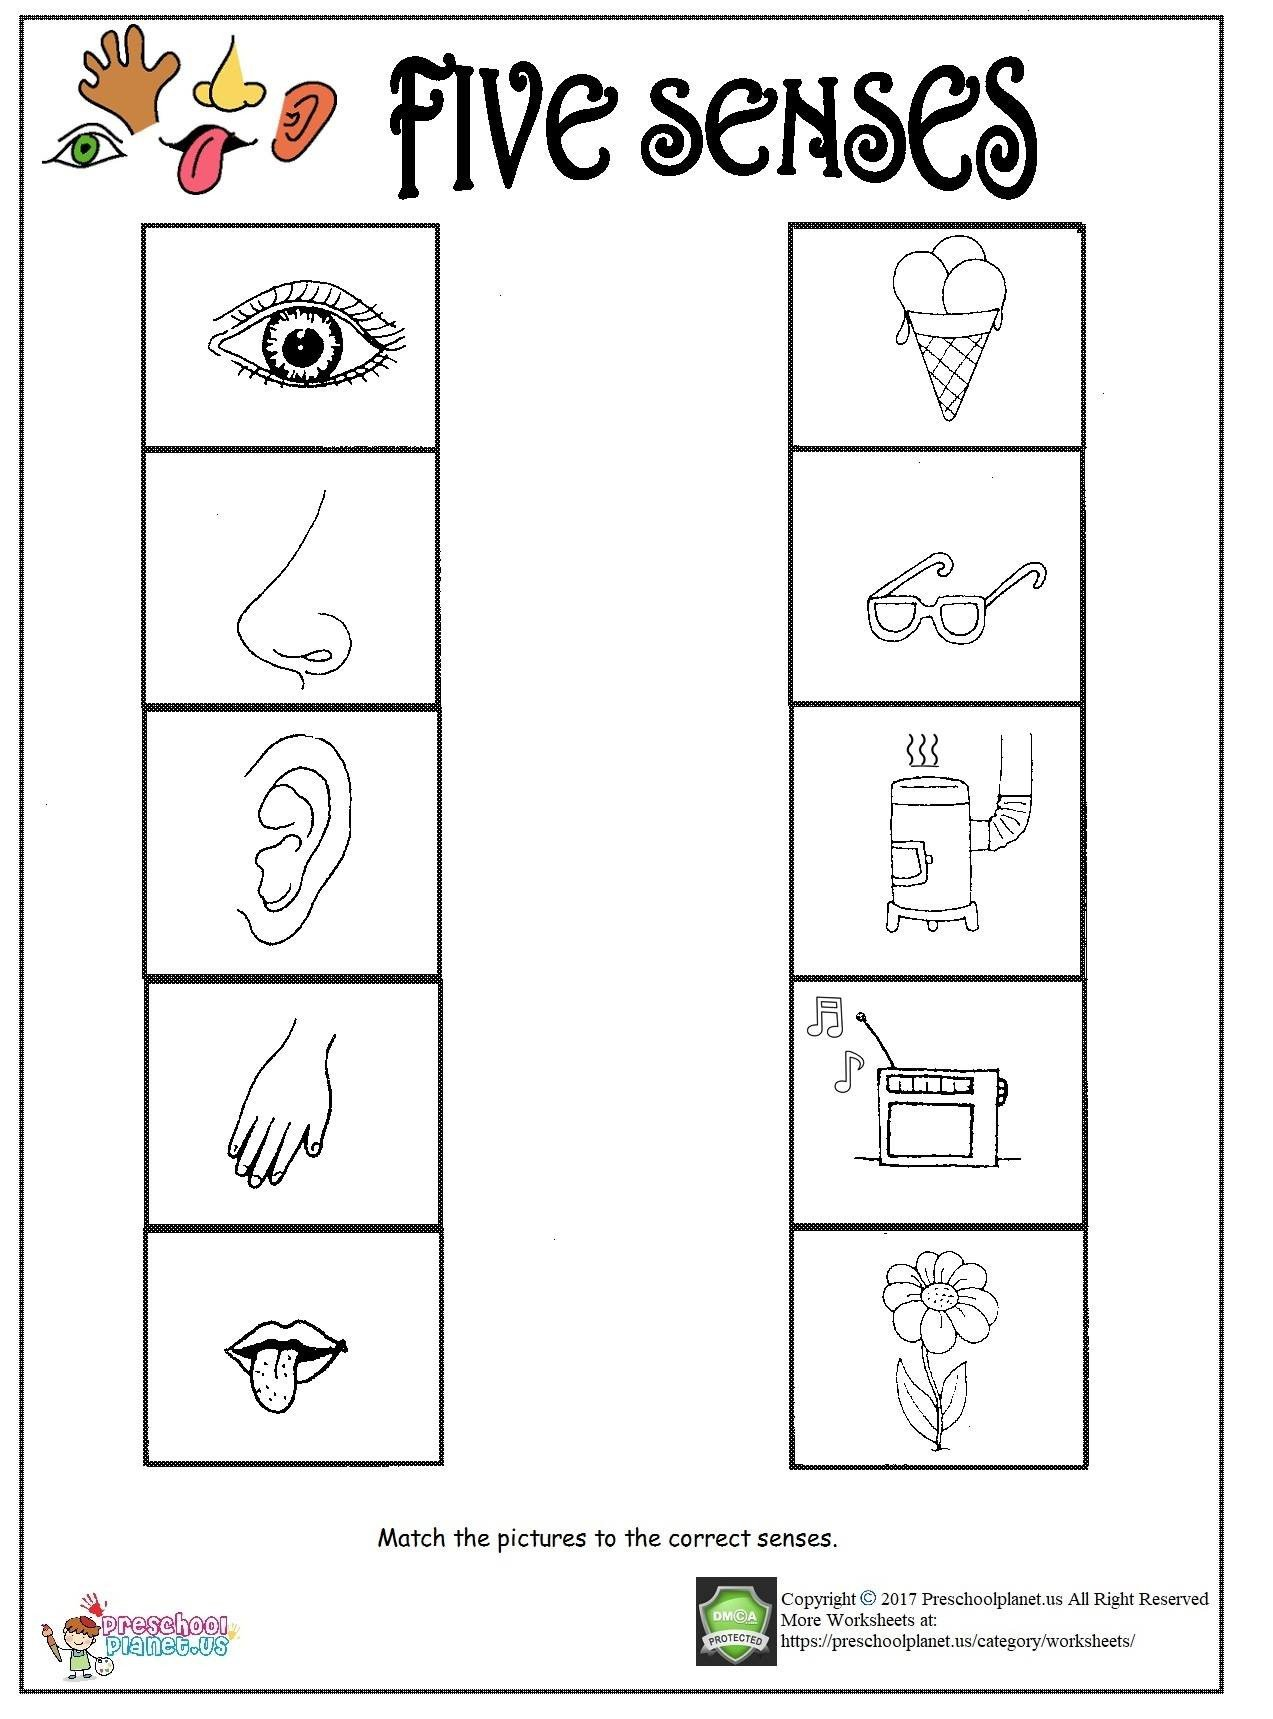 The Five Senses Worksheets Printable Five Senses Worksheet – Preschoolplanet